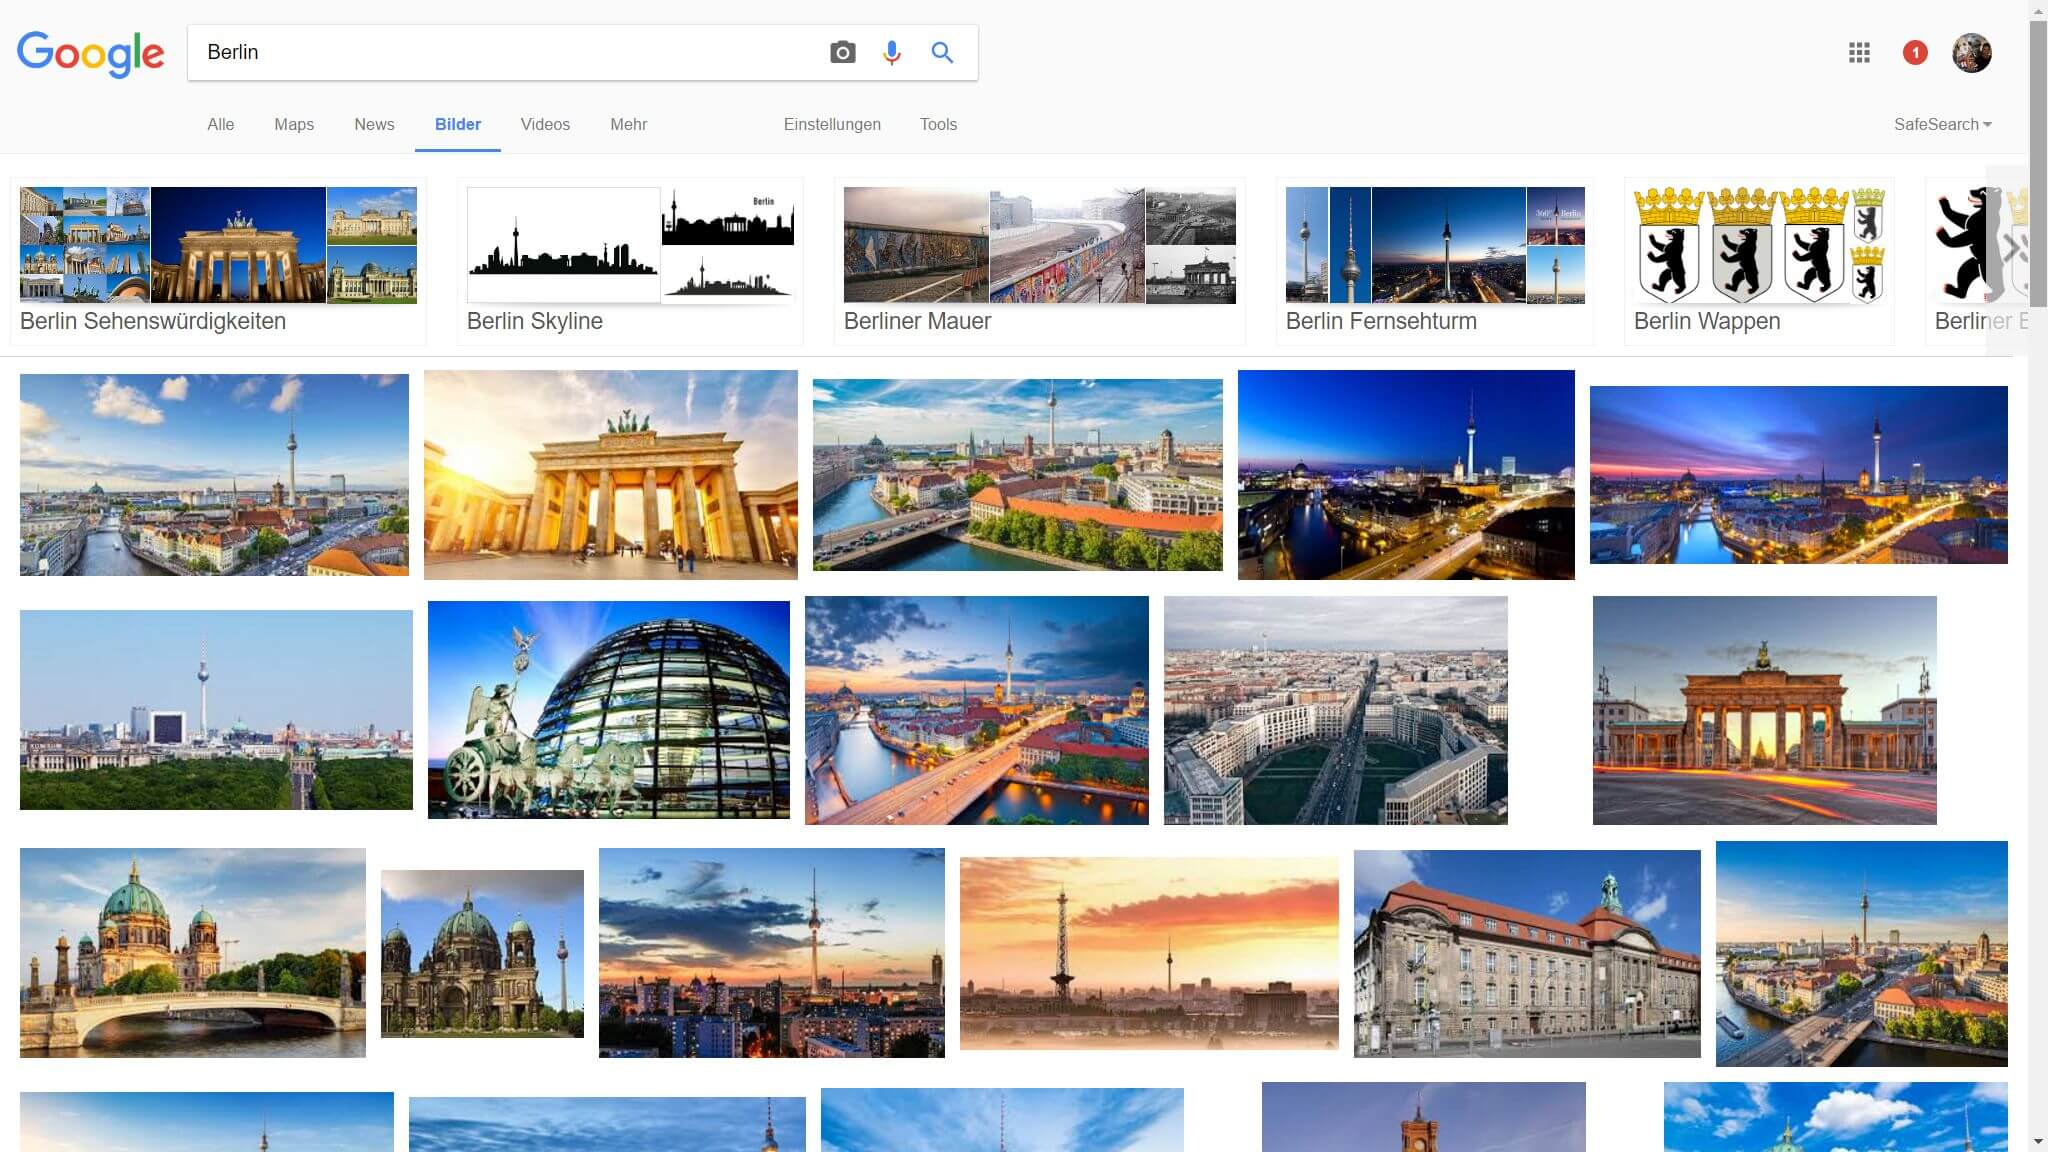 google image search current